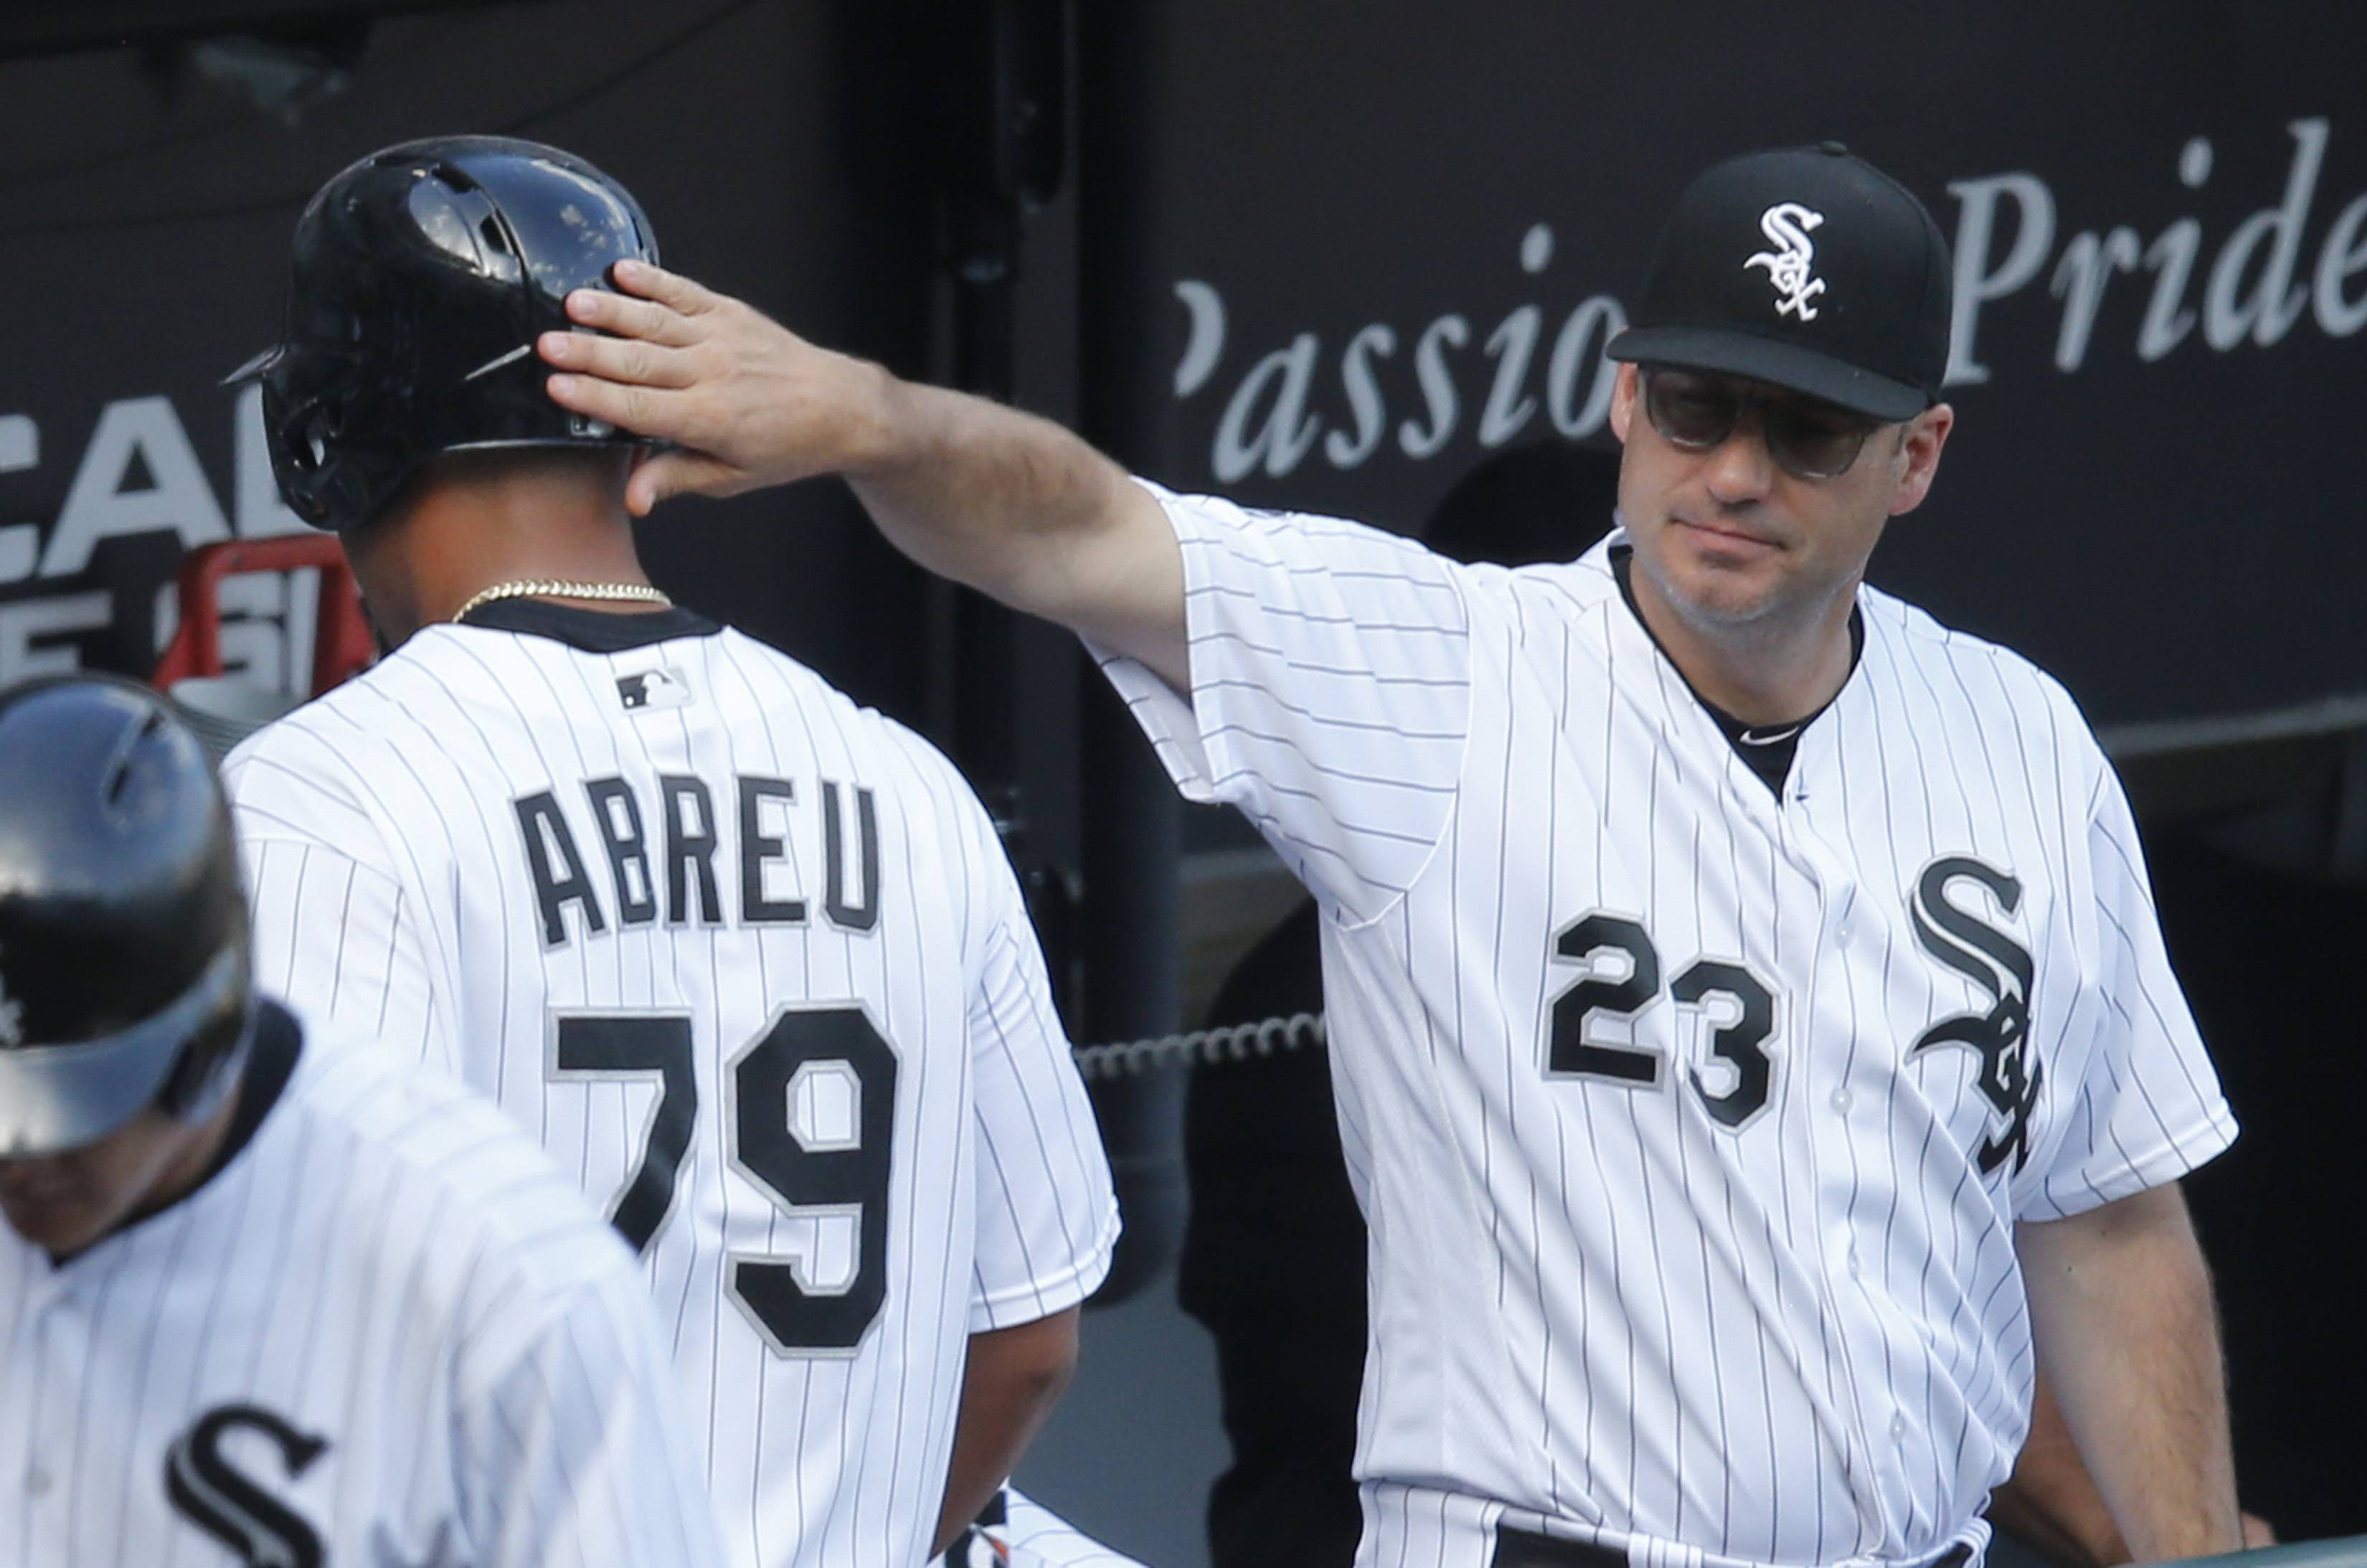 Chicago White Sox manager Robin Ventura (23) pats Jose Abreu on the helmet after Abreu scored on a double by Justin Morneau during the eight inning of a baseball game against the Detroit Tigers, Wednesday, Sept. 7, 2016, in Chicago. (AP Photo/Charles Rex Arbogast)